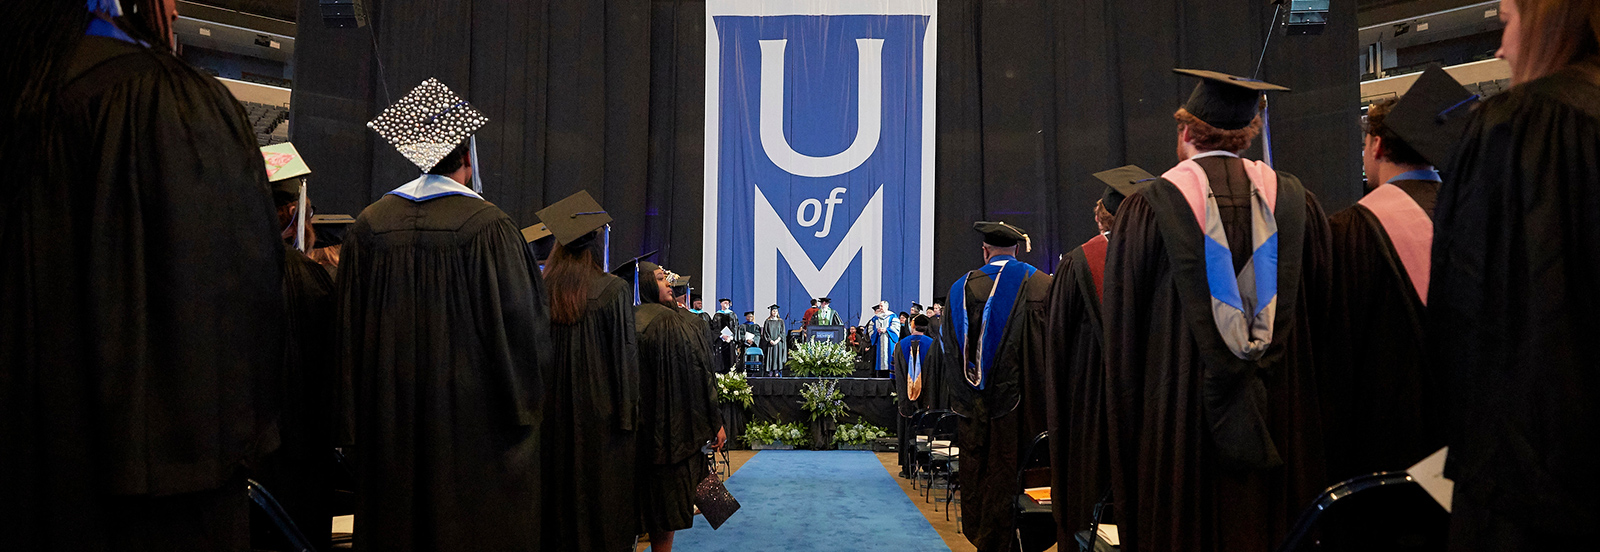 UofM Students at Graduation